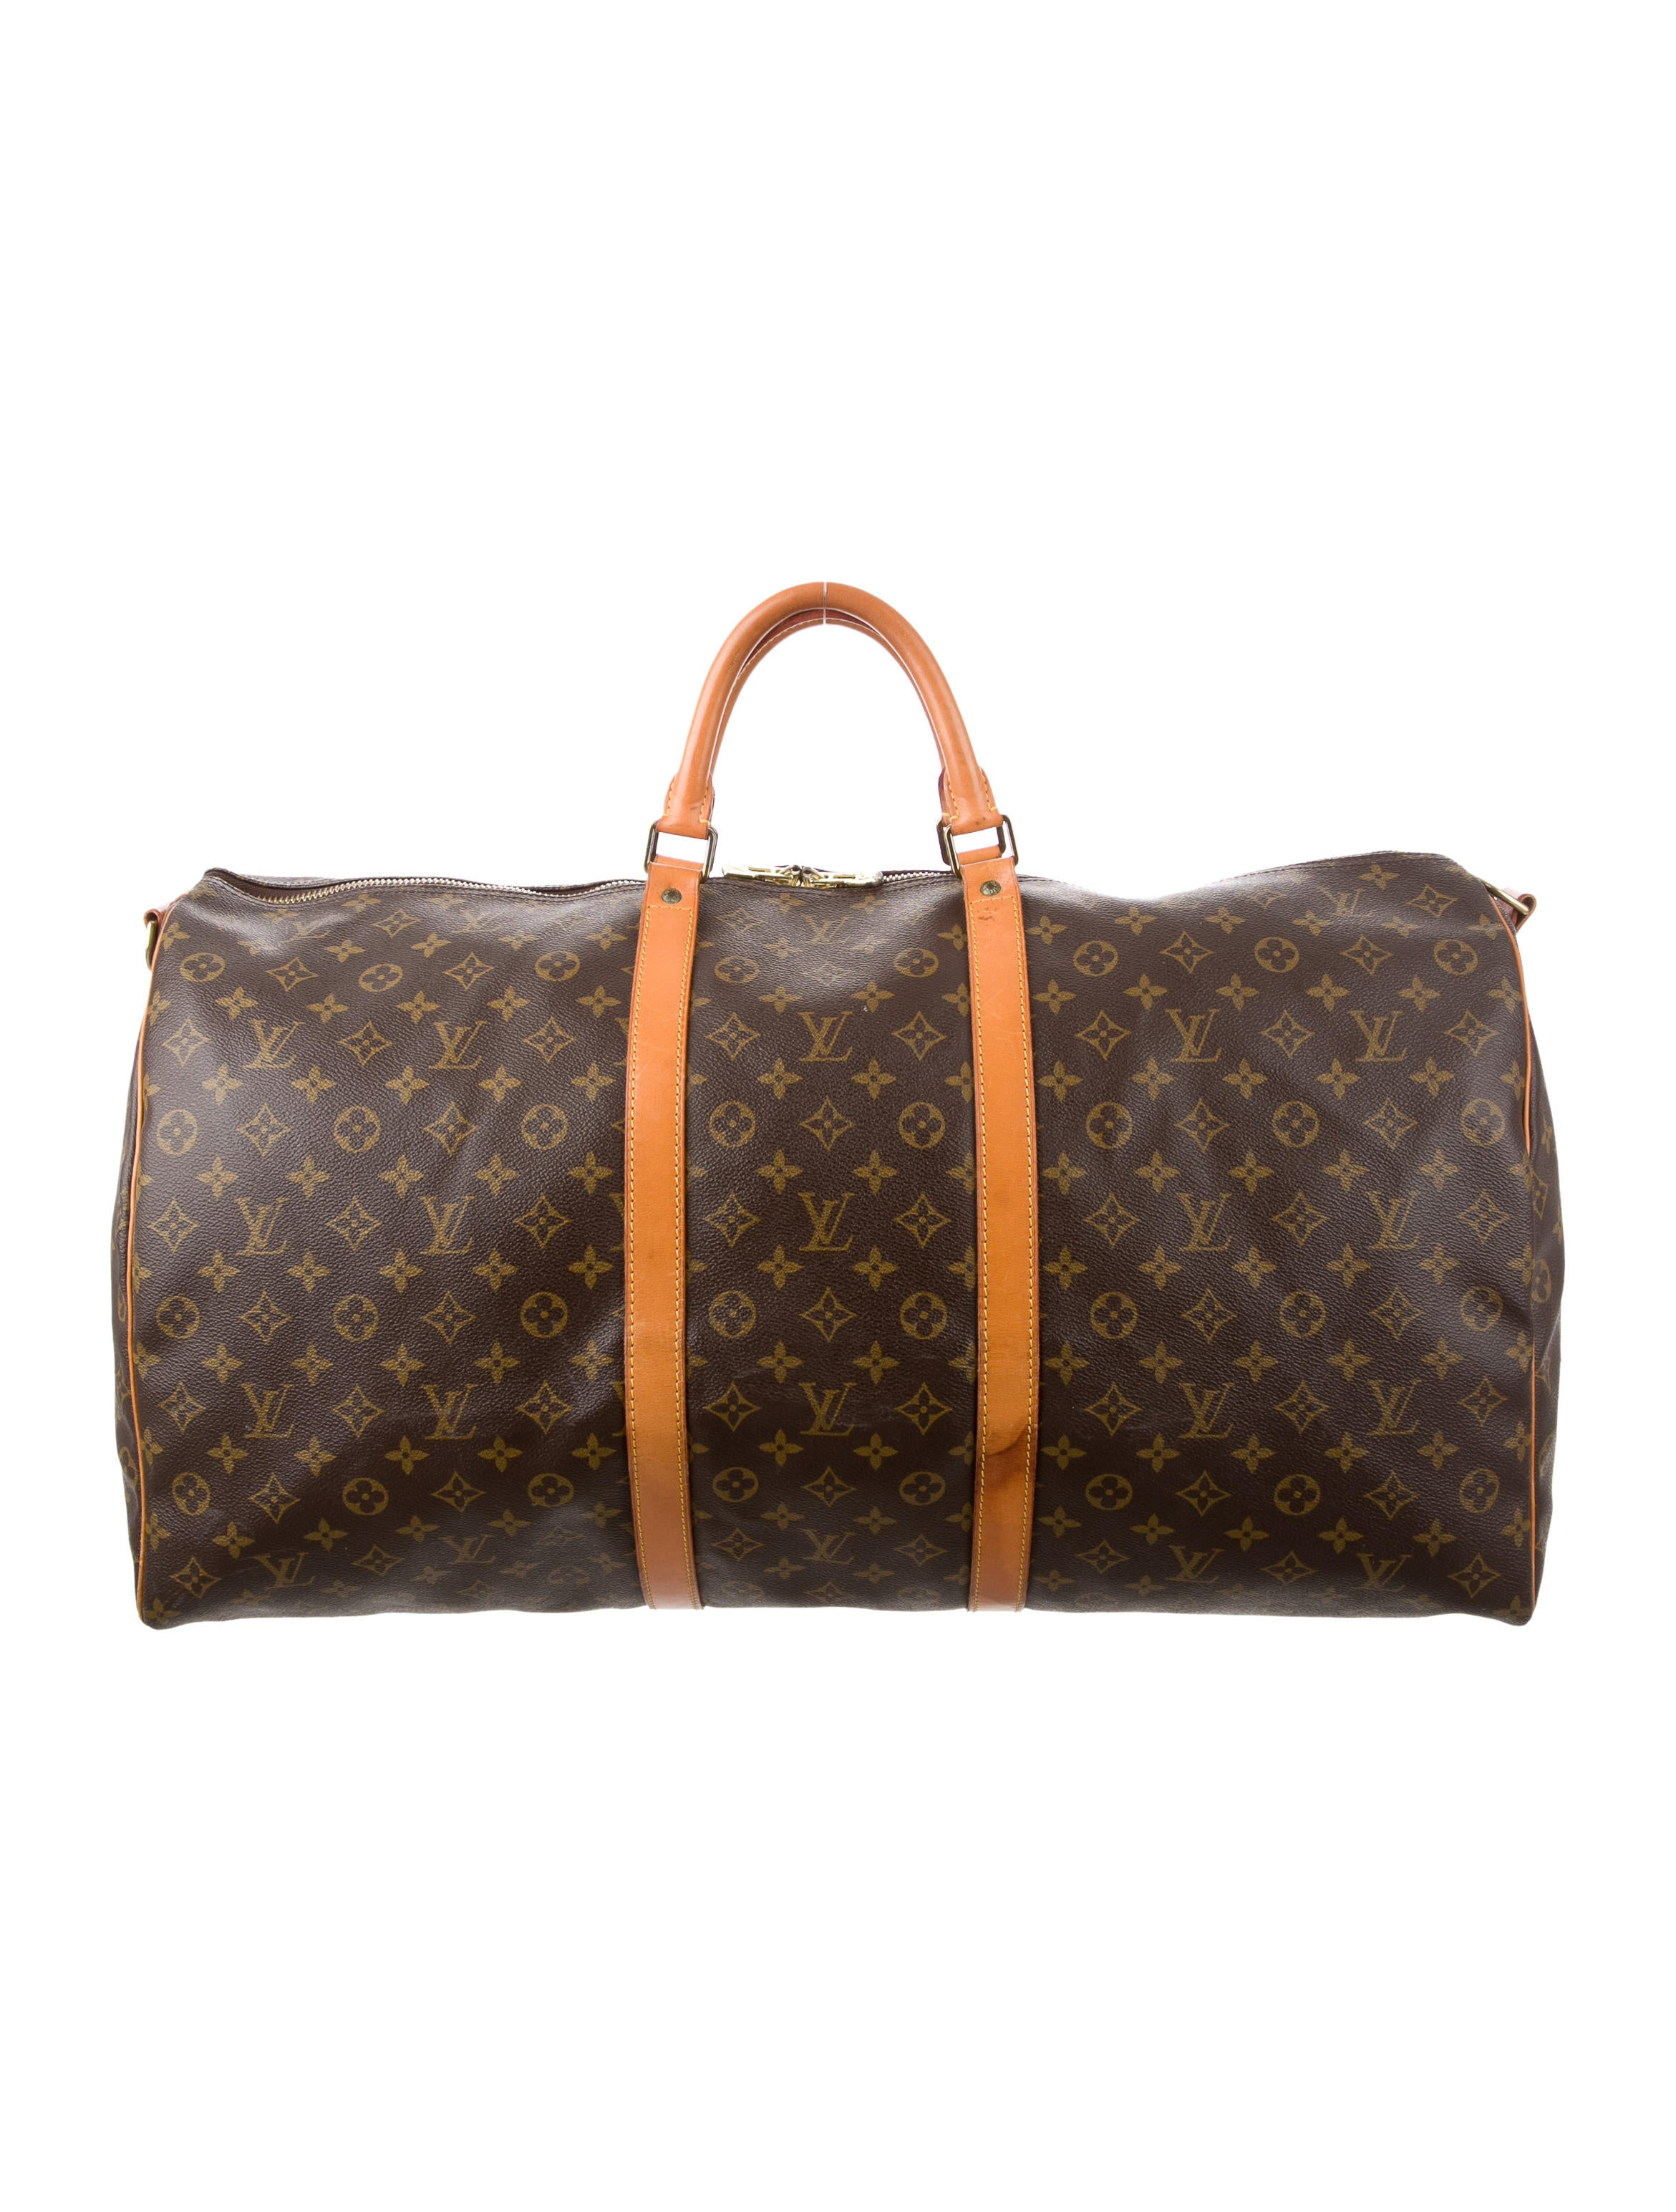 louis vuitton monogram keepall bandouli re 60 bags lou110465 the realreal. Black Bedroom Furniture Sets. Home Design Ideas